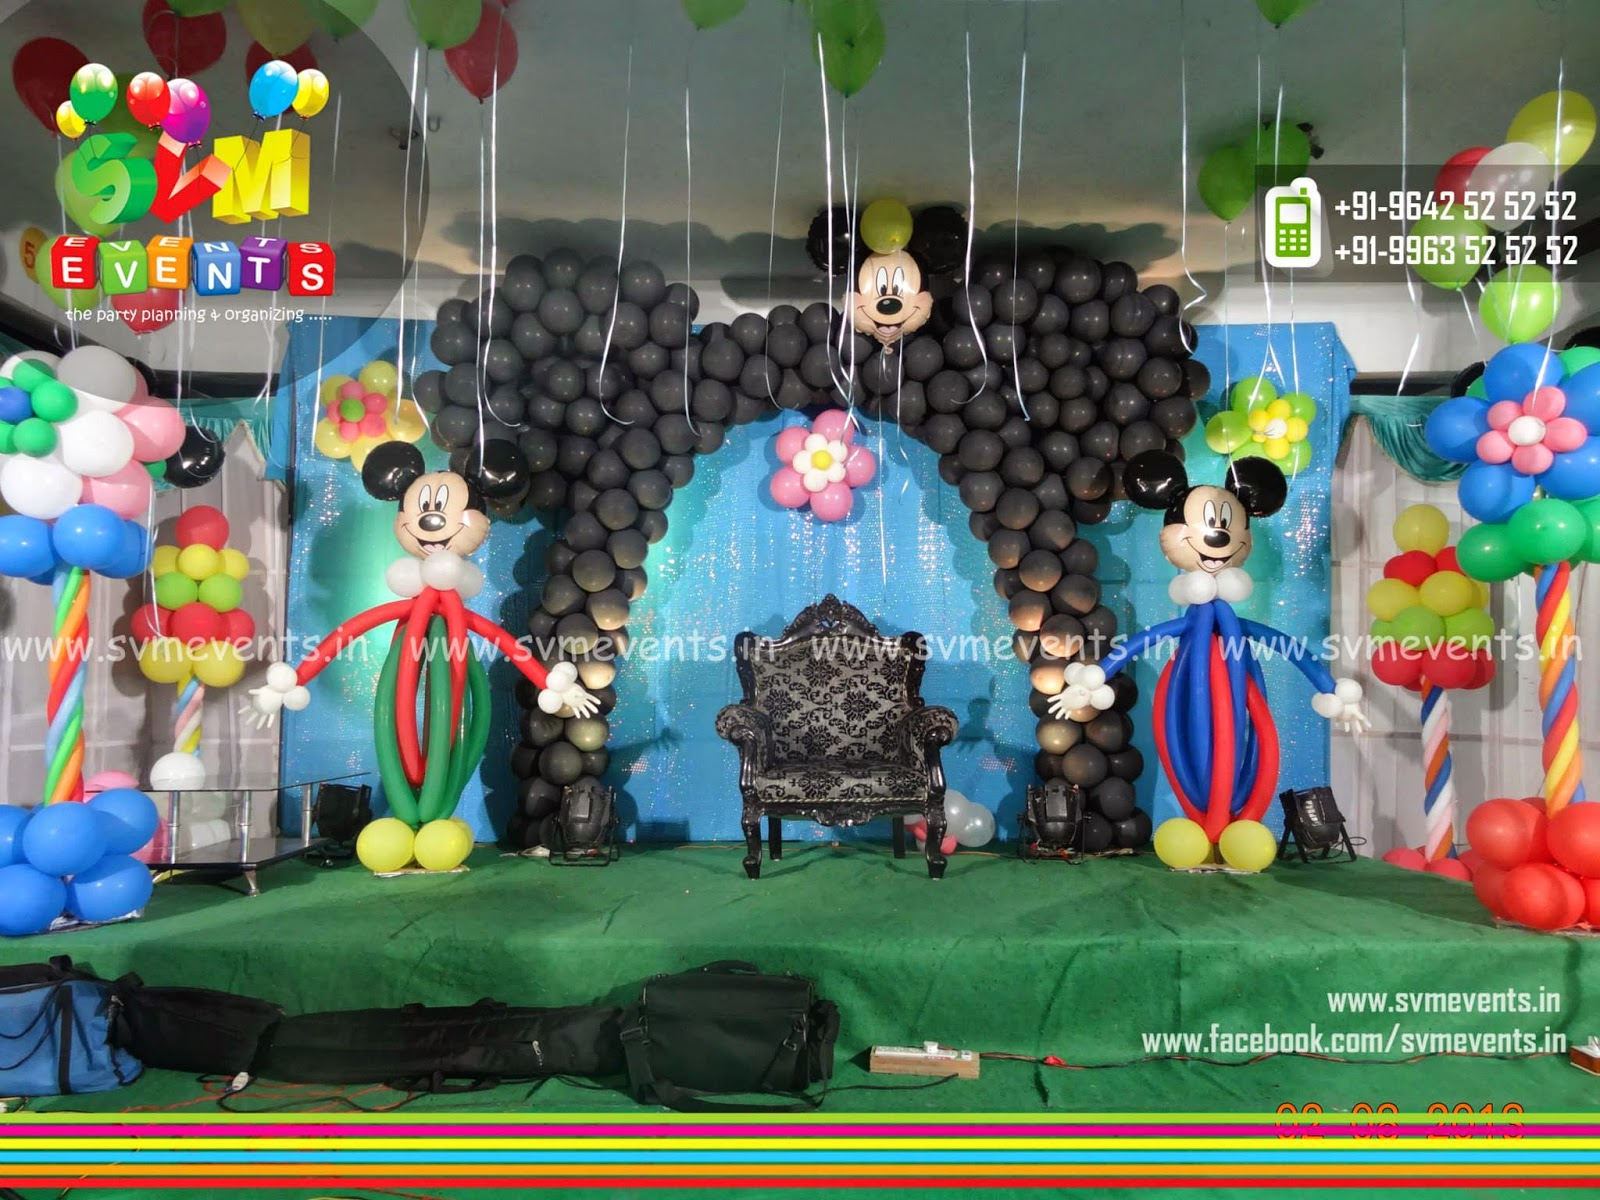 Svm events amazing balloon decorations for kids birthday for 1st birthday stage decoration